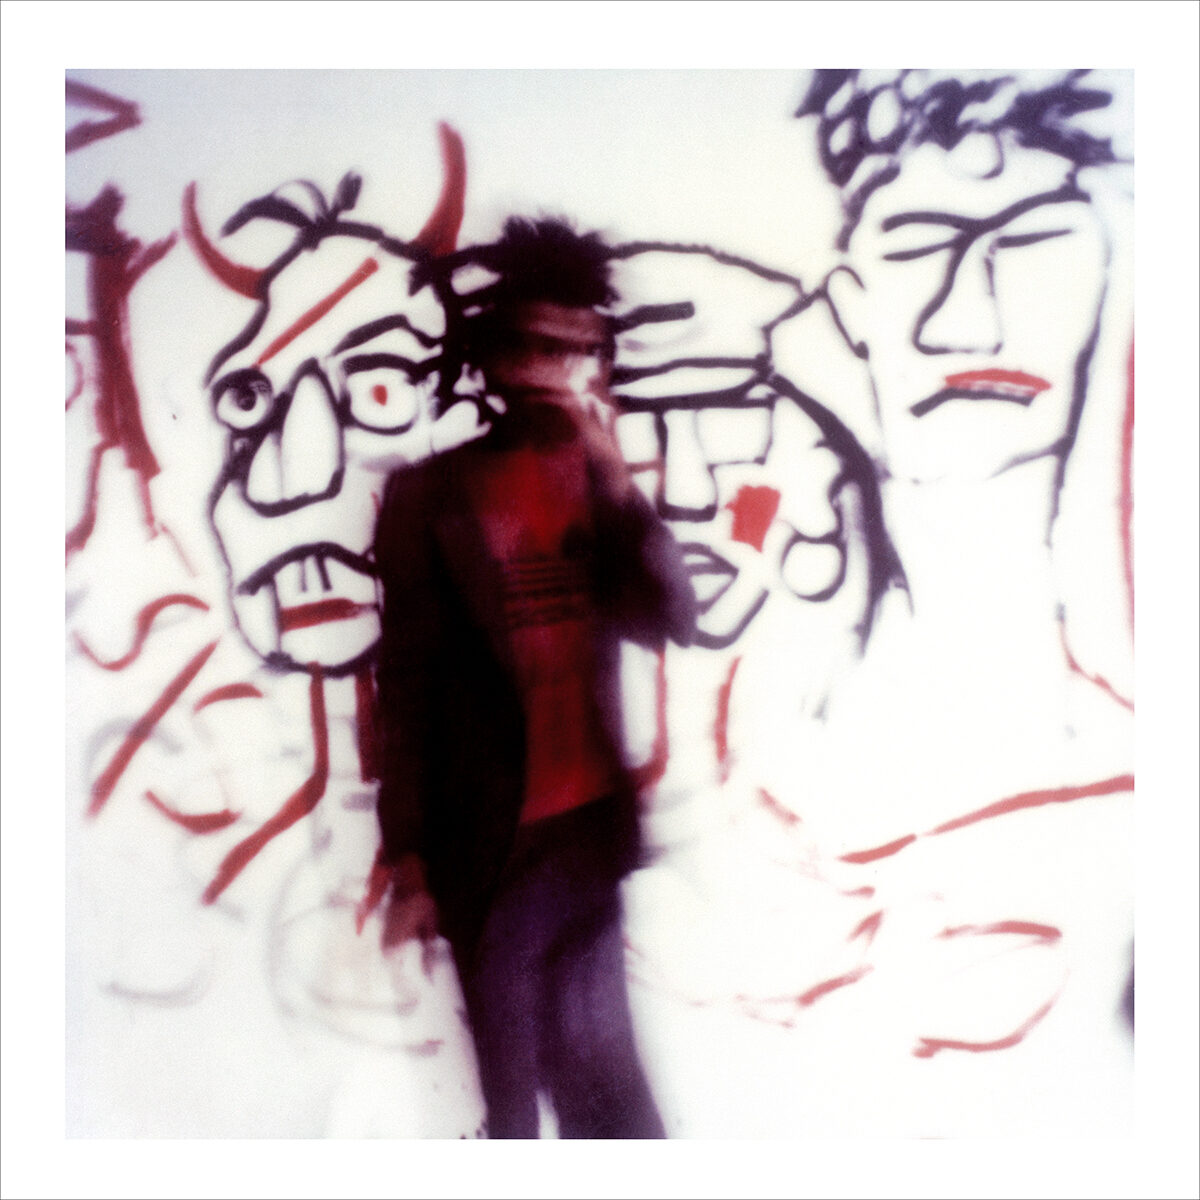 Maripol Jean-Michel Basquait original pigmented archival ink on Hahnemuehle paper signed by artist for sale